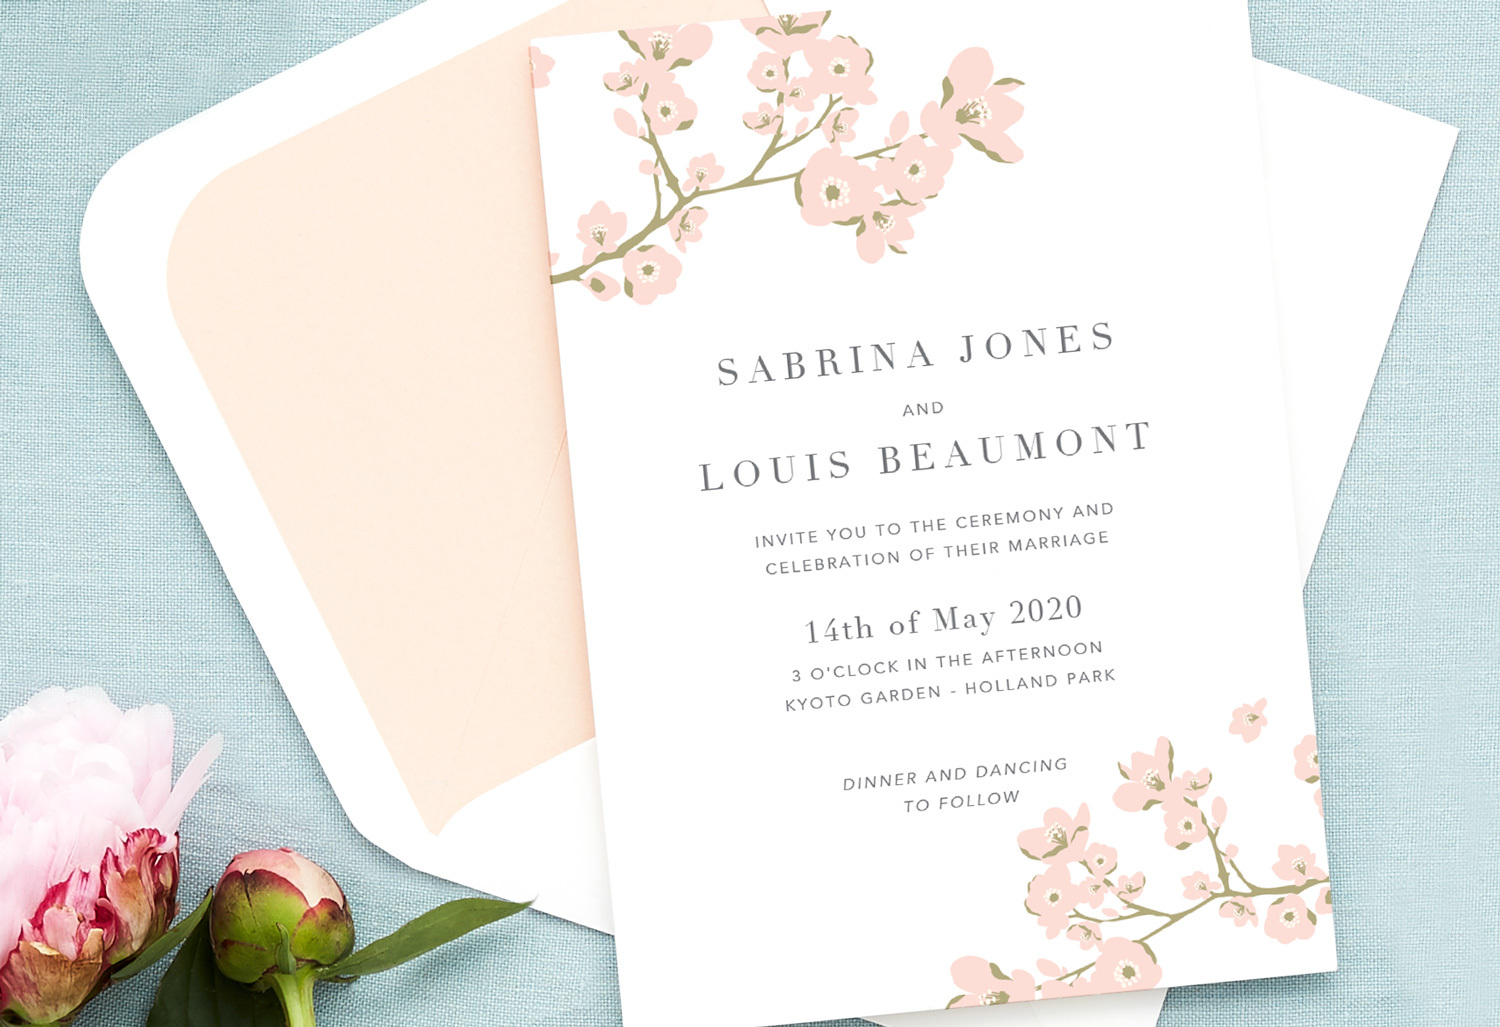 Formal Wedding Invitation Templates: Wedding Invitation Wording - Ideas & Inspiration